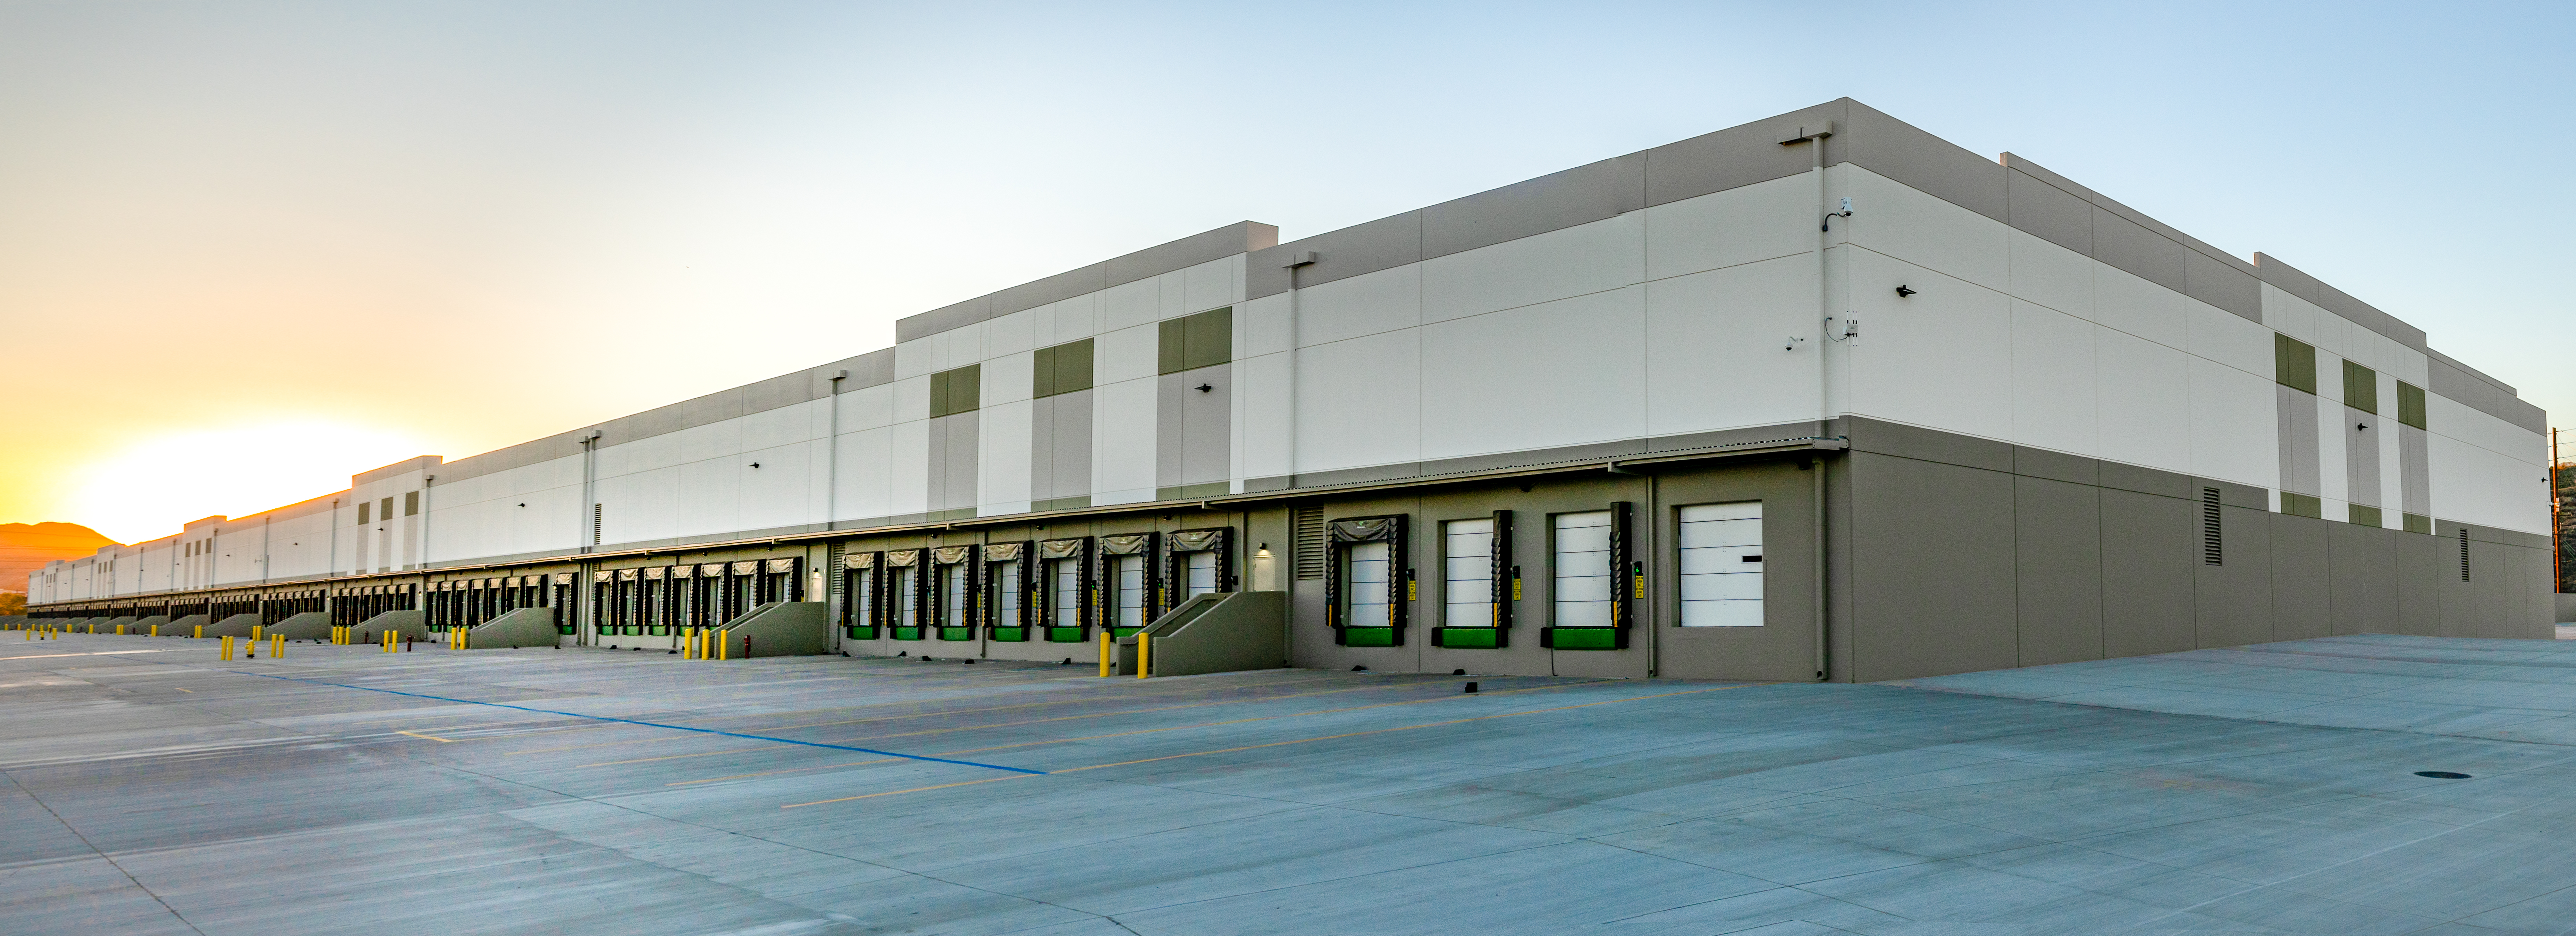 The rear exterior of the new Walmart automated consolidation center in Colton, California